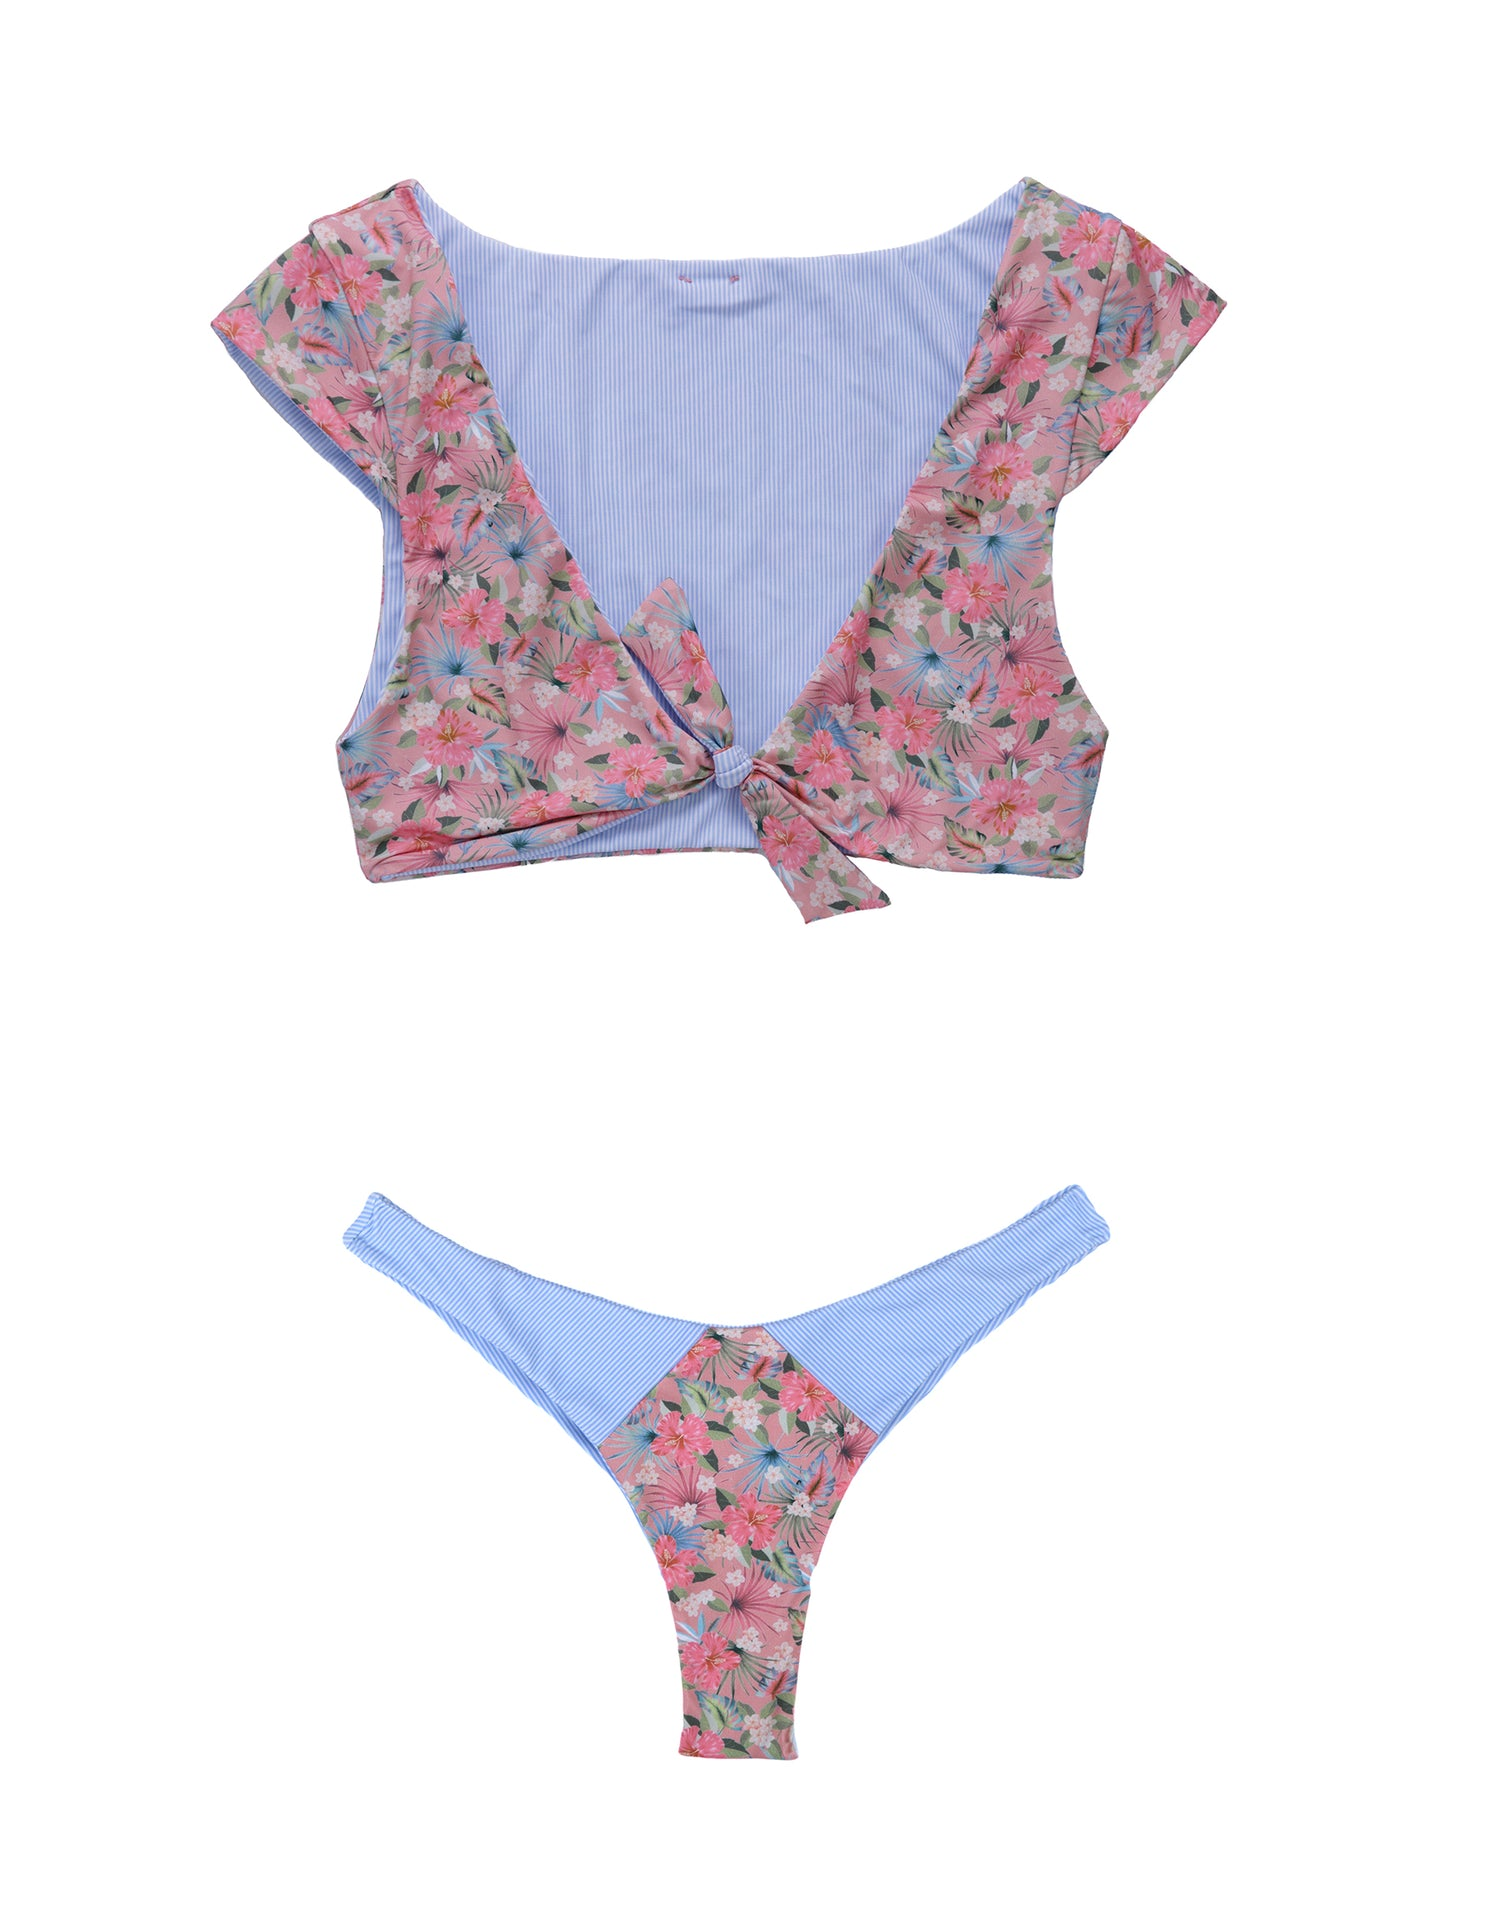 Sydney Brazilian Bikini Bottom in Marseille Floral - product view